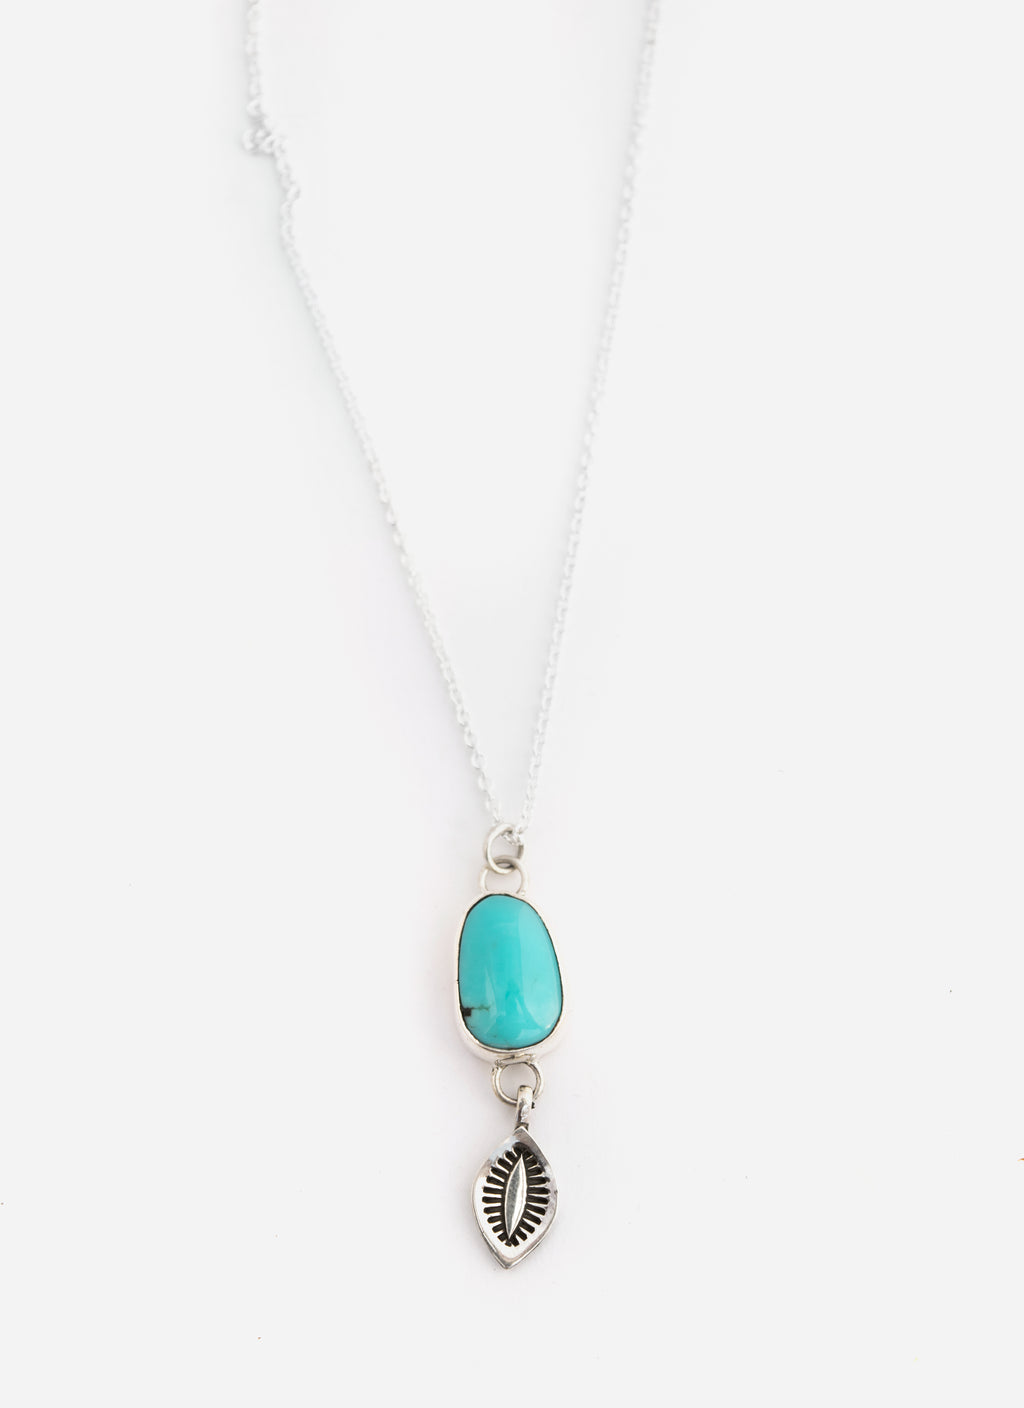 Campitos Turquoise Necklace No. 3